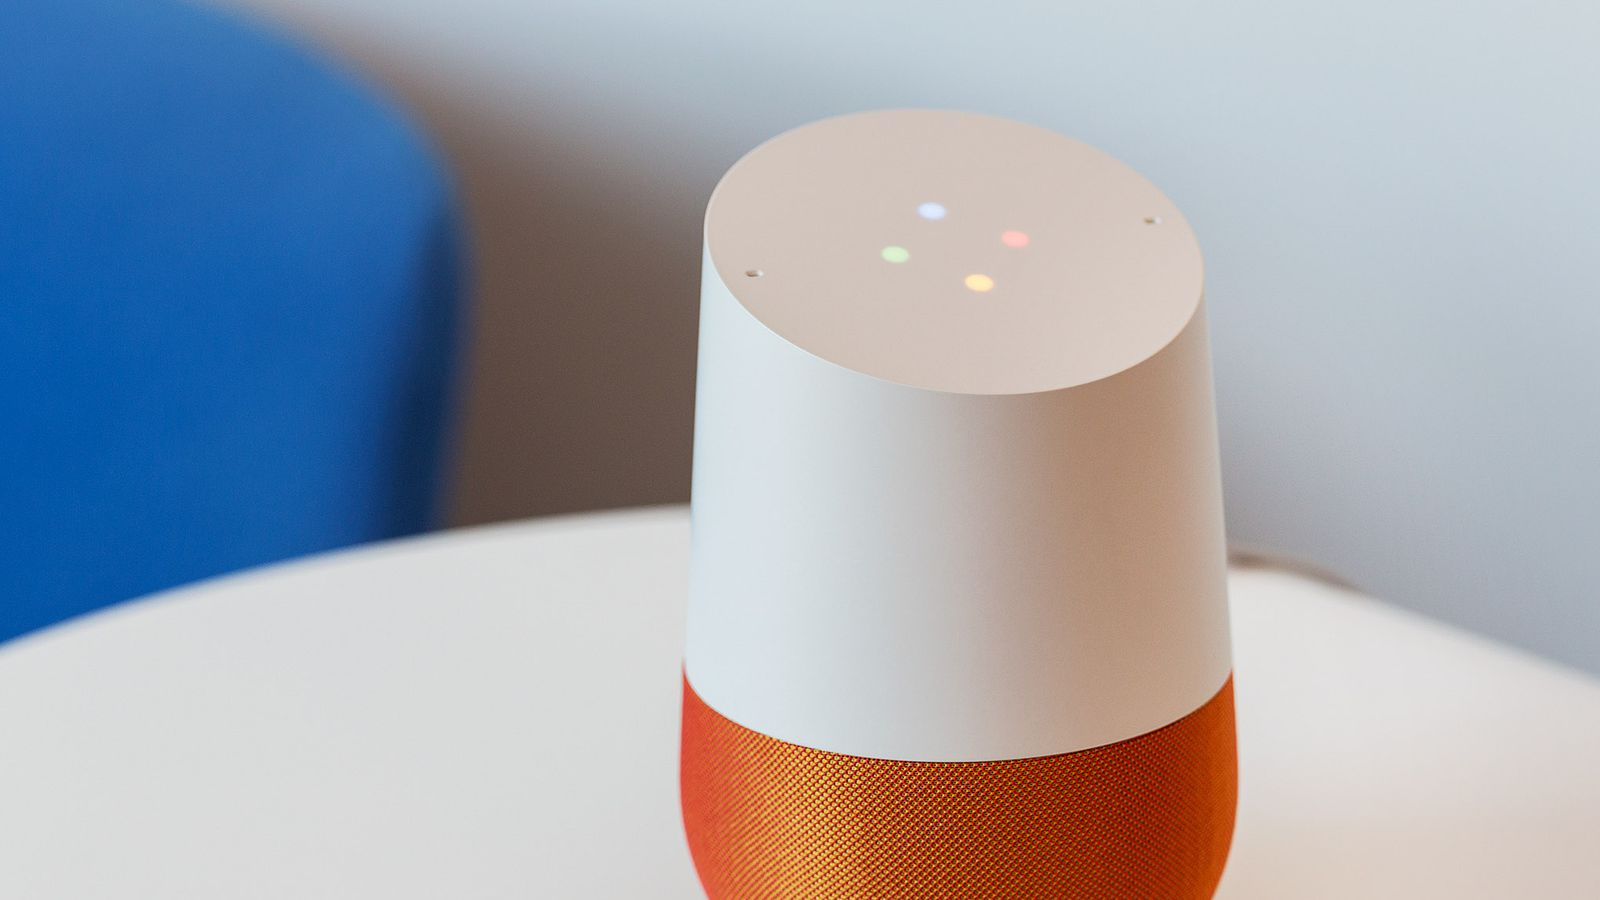 theverge.com - Google Home now supports multiple users, but still can't separate work and personal accounts